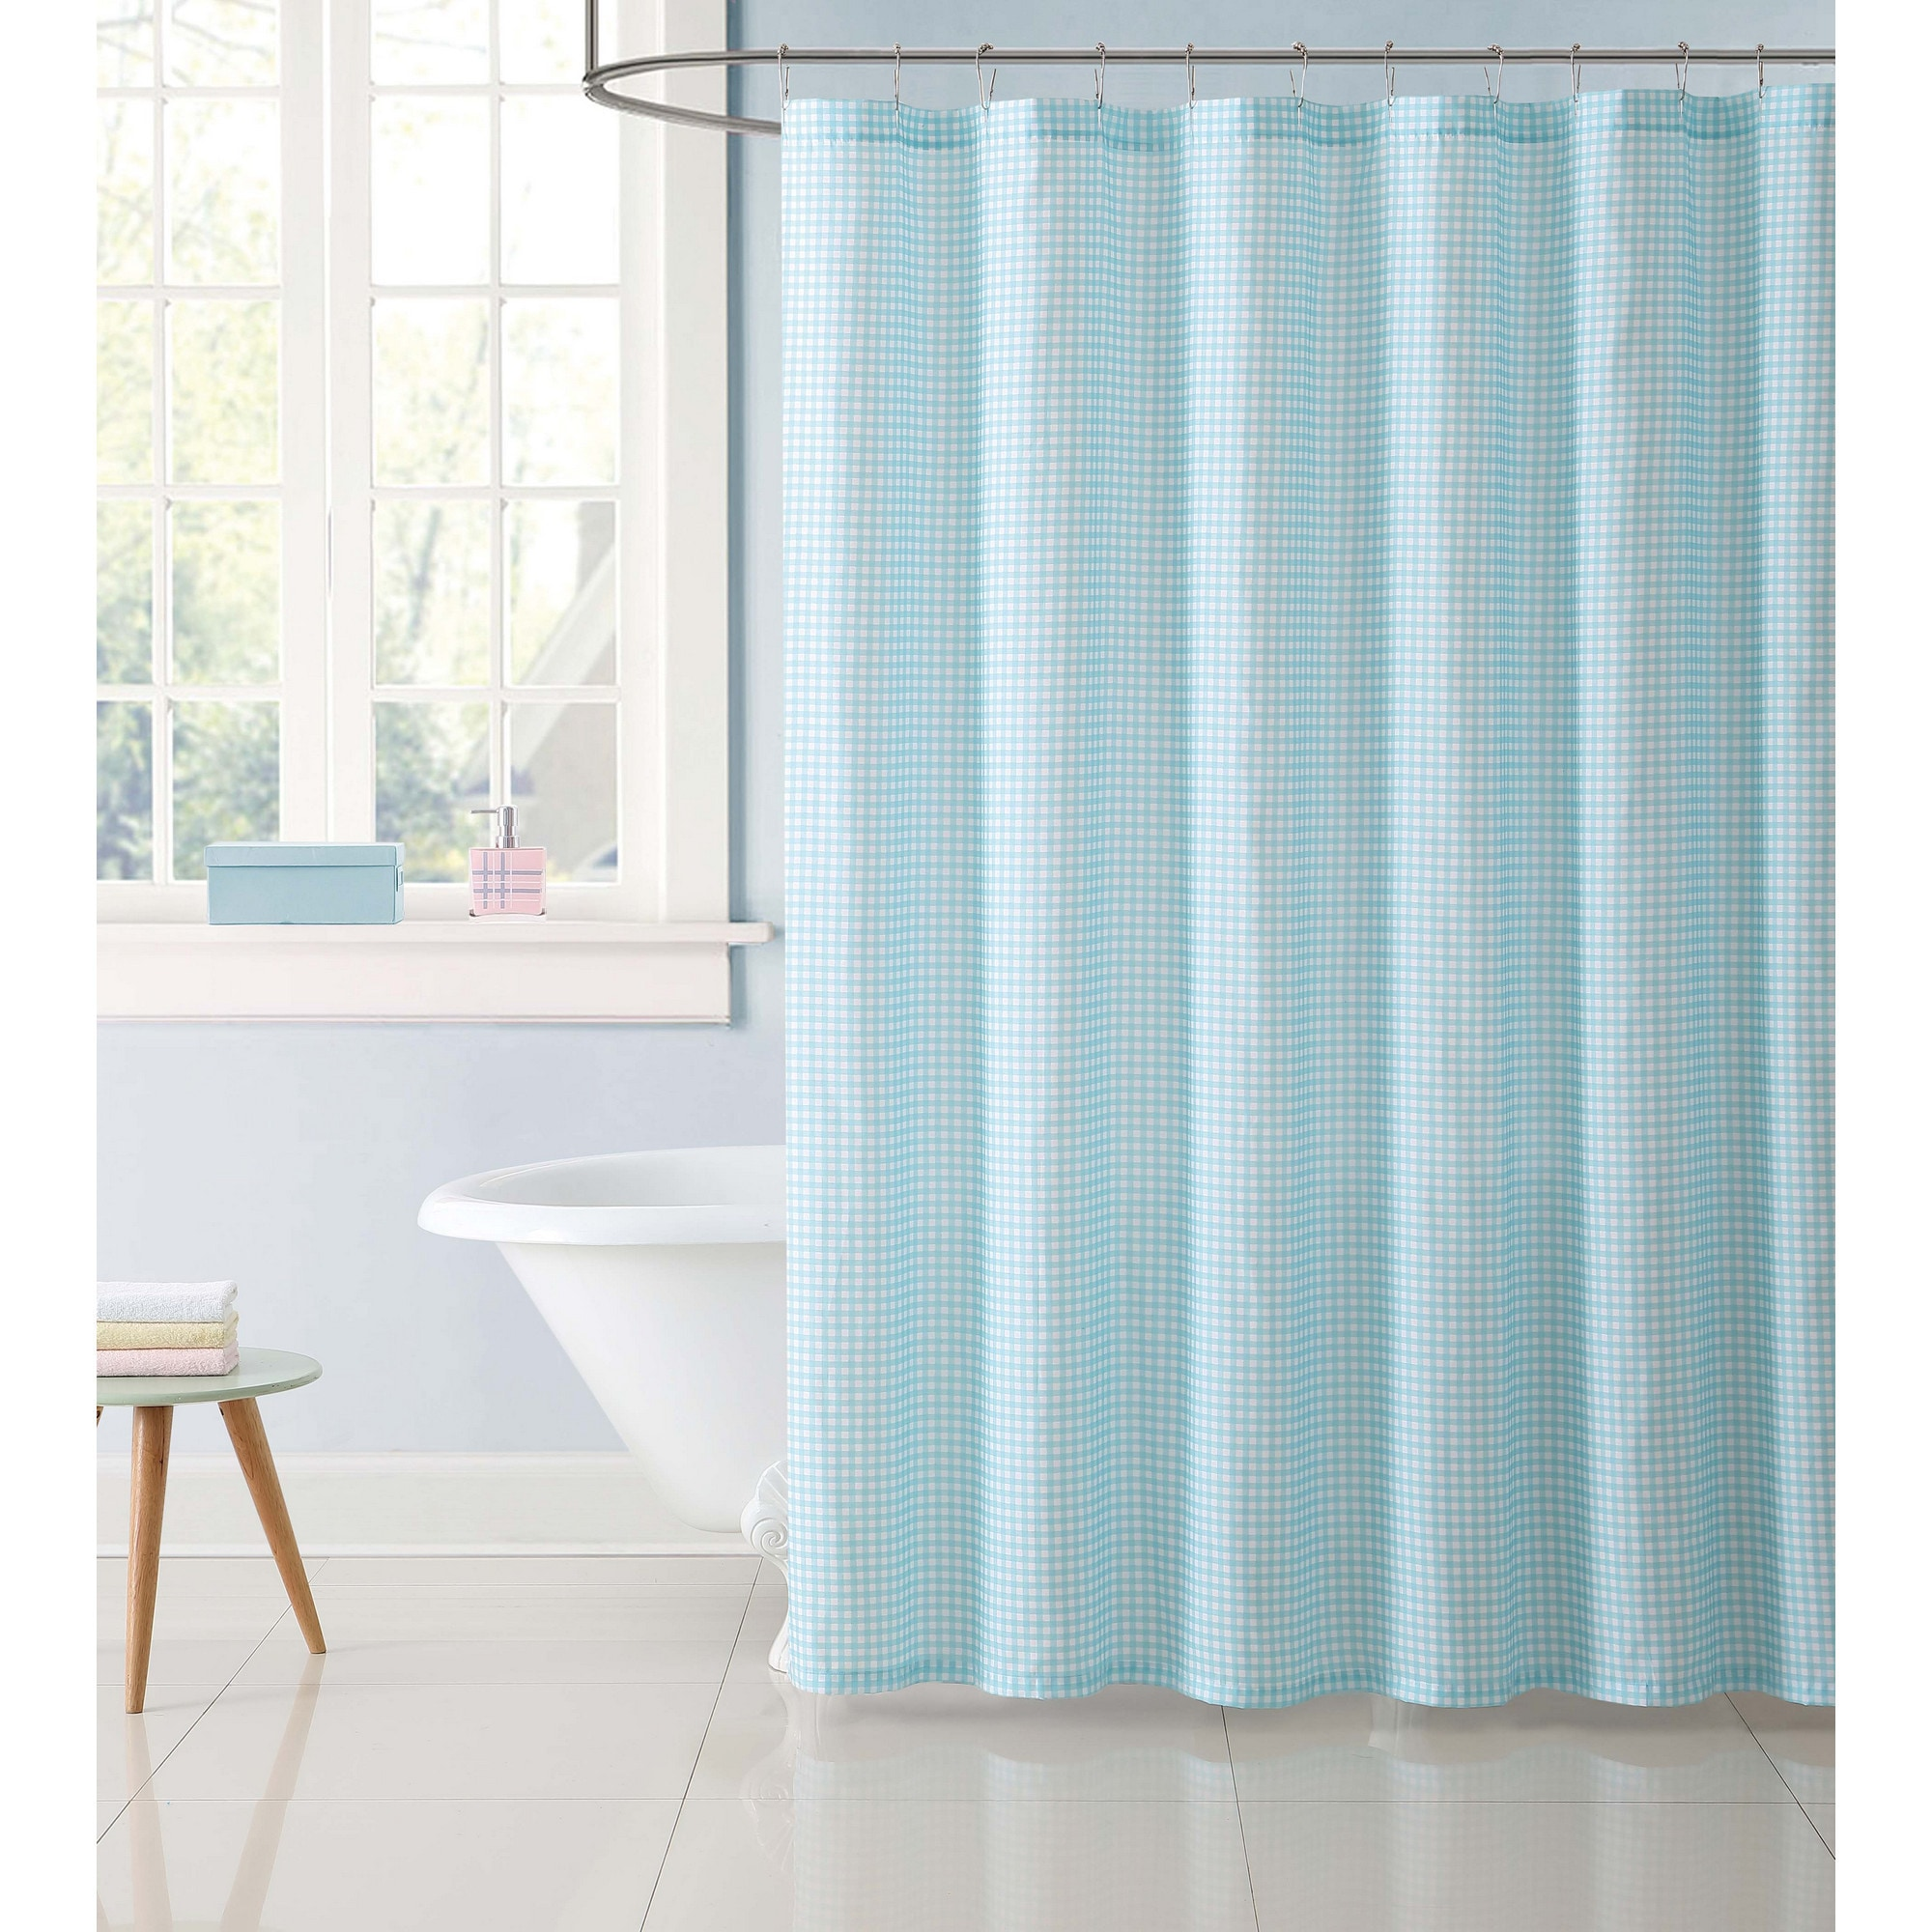 shower decorating and curtains curtain blue bathroom checkered gingham yellow navy with black design white to regard